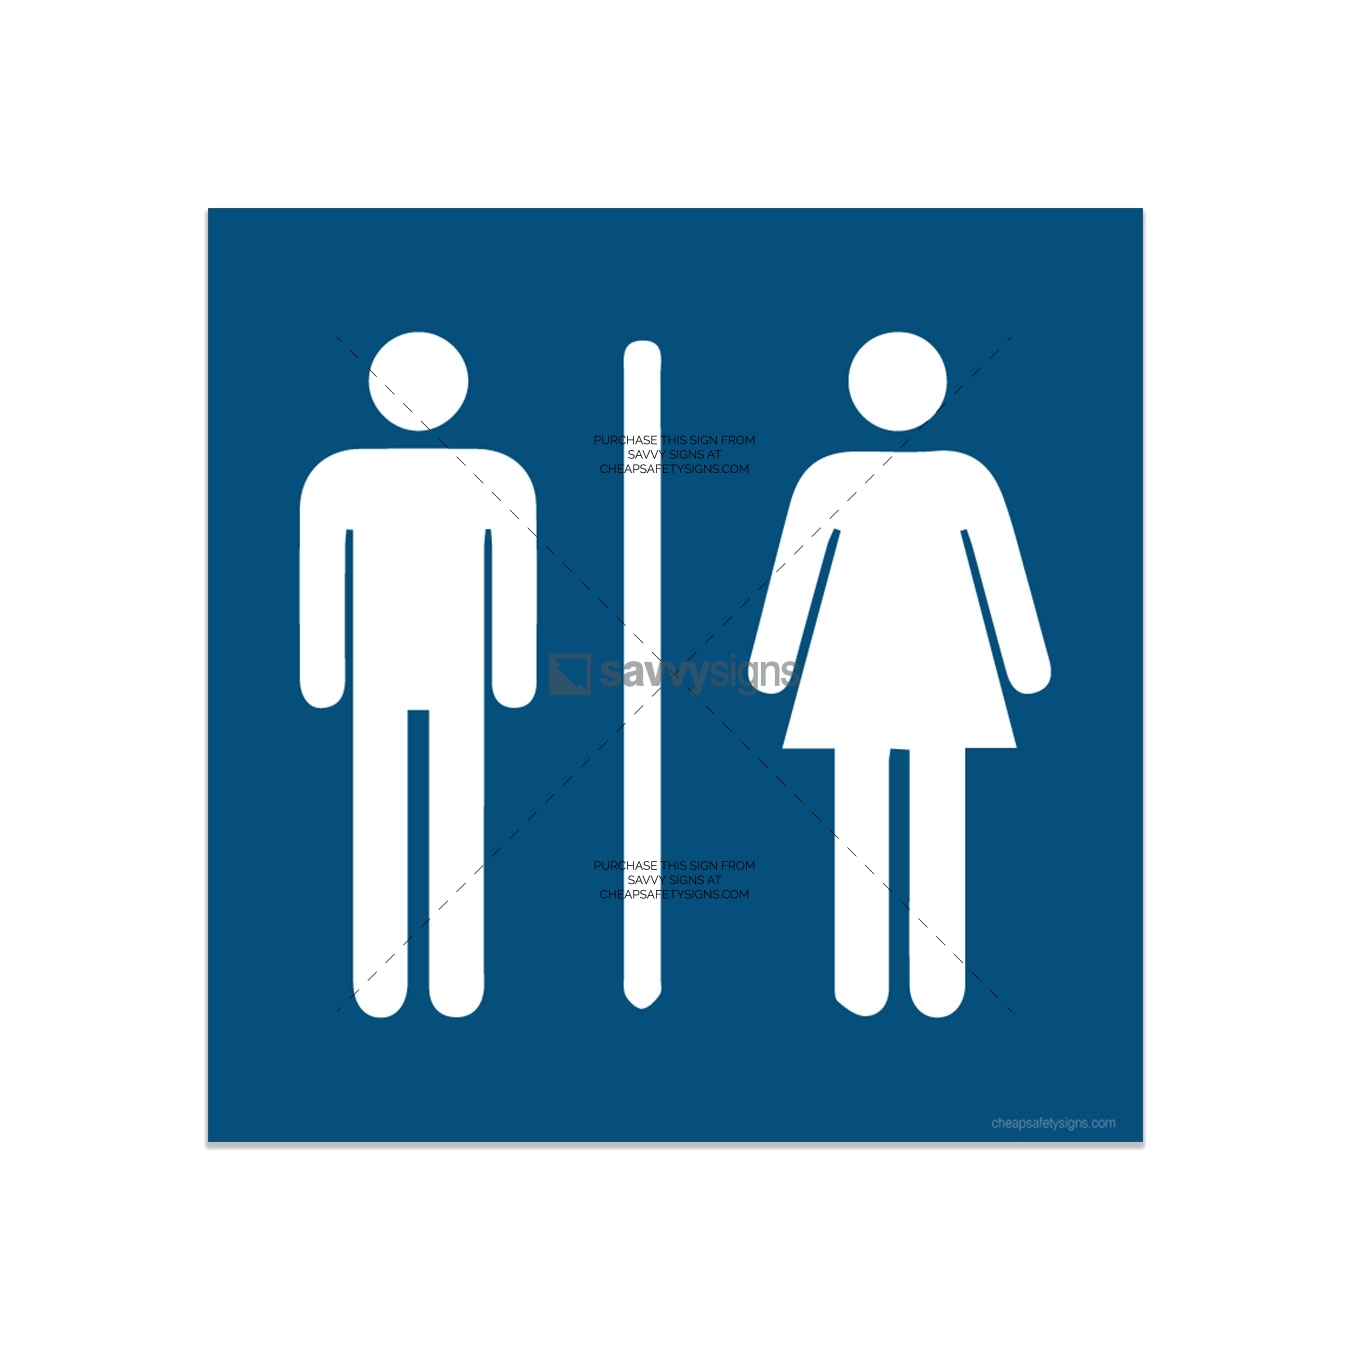 SSFAC3033-FACILITY-Workplace-Safety-Signs_Savvy-Signs_v4